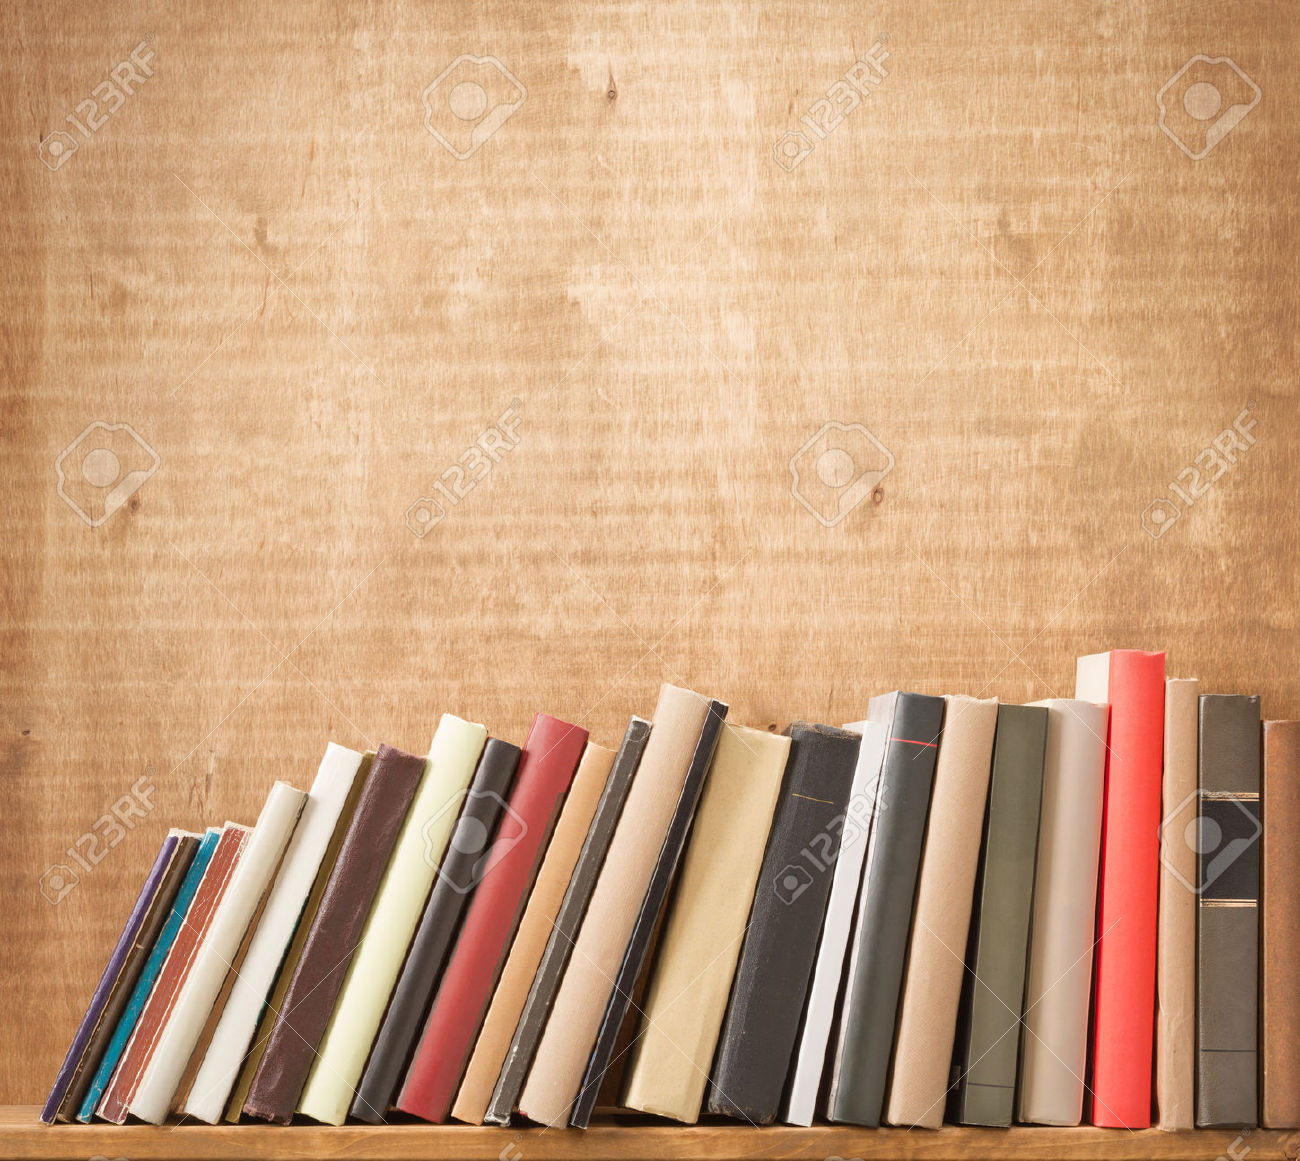 Ground Wire Color >> pitures of books 20 free Cliparts | Download images on ...